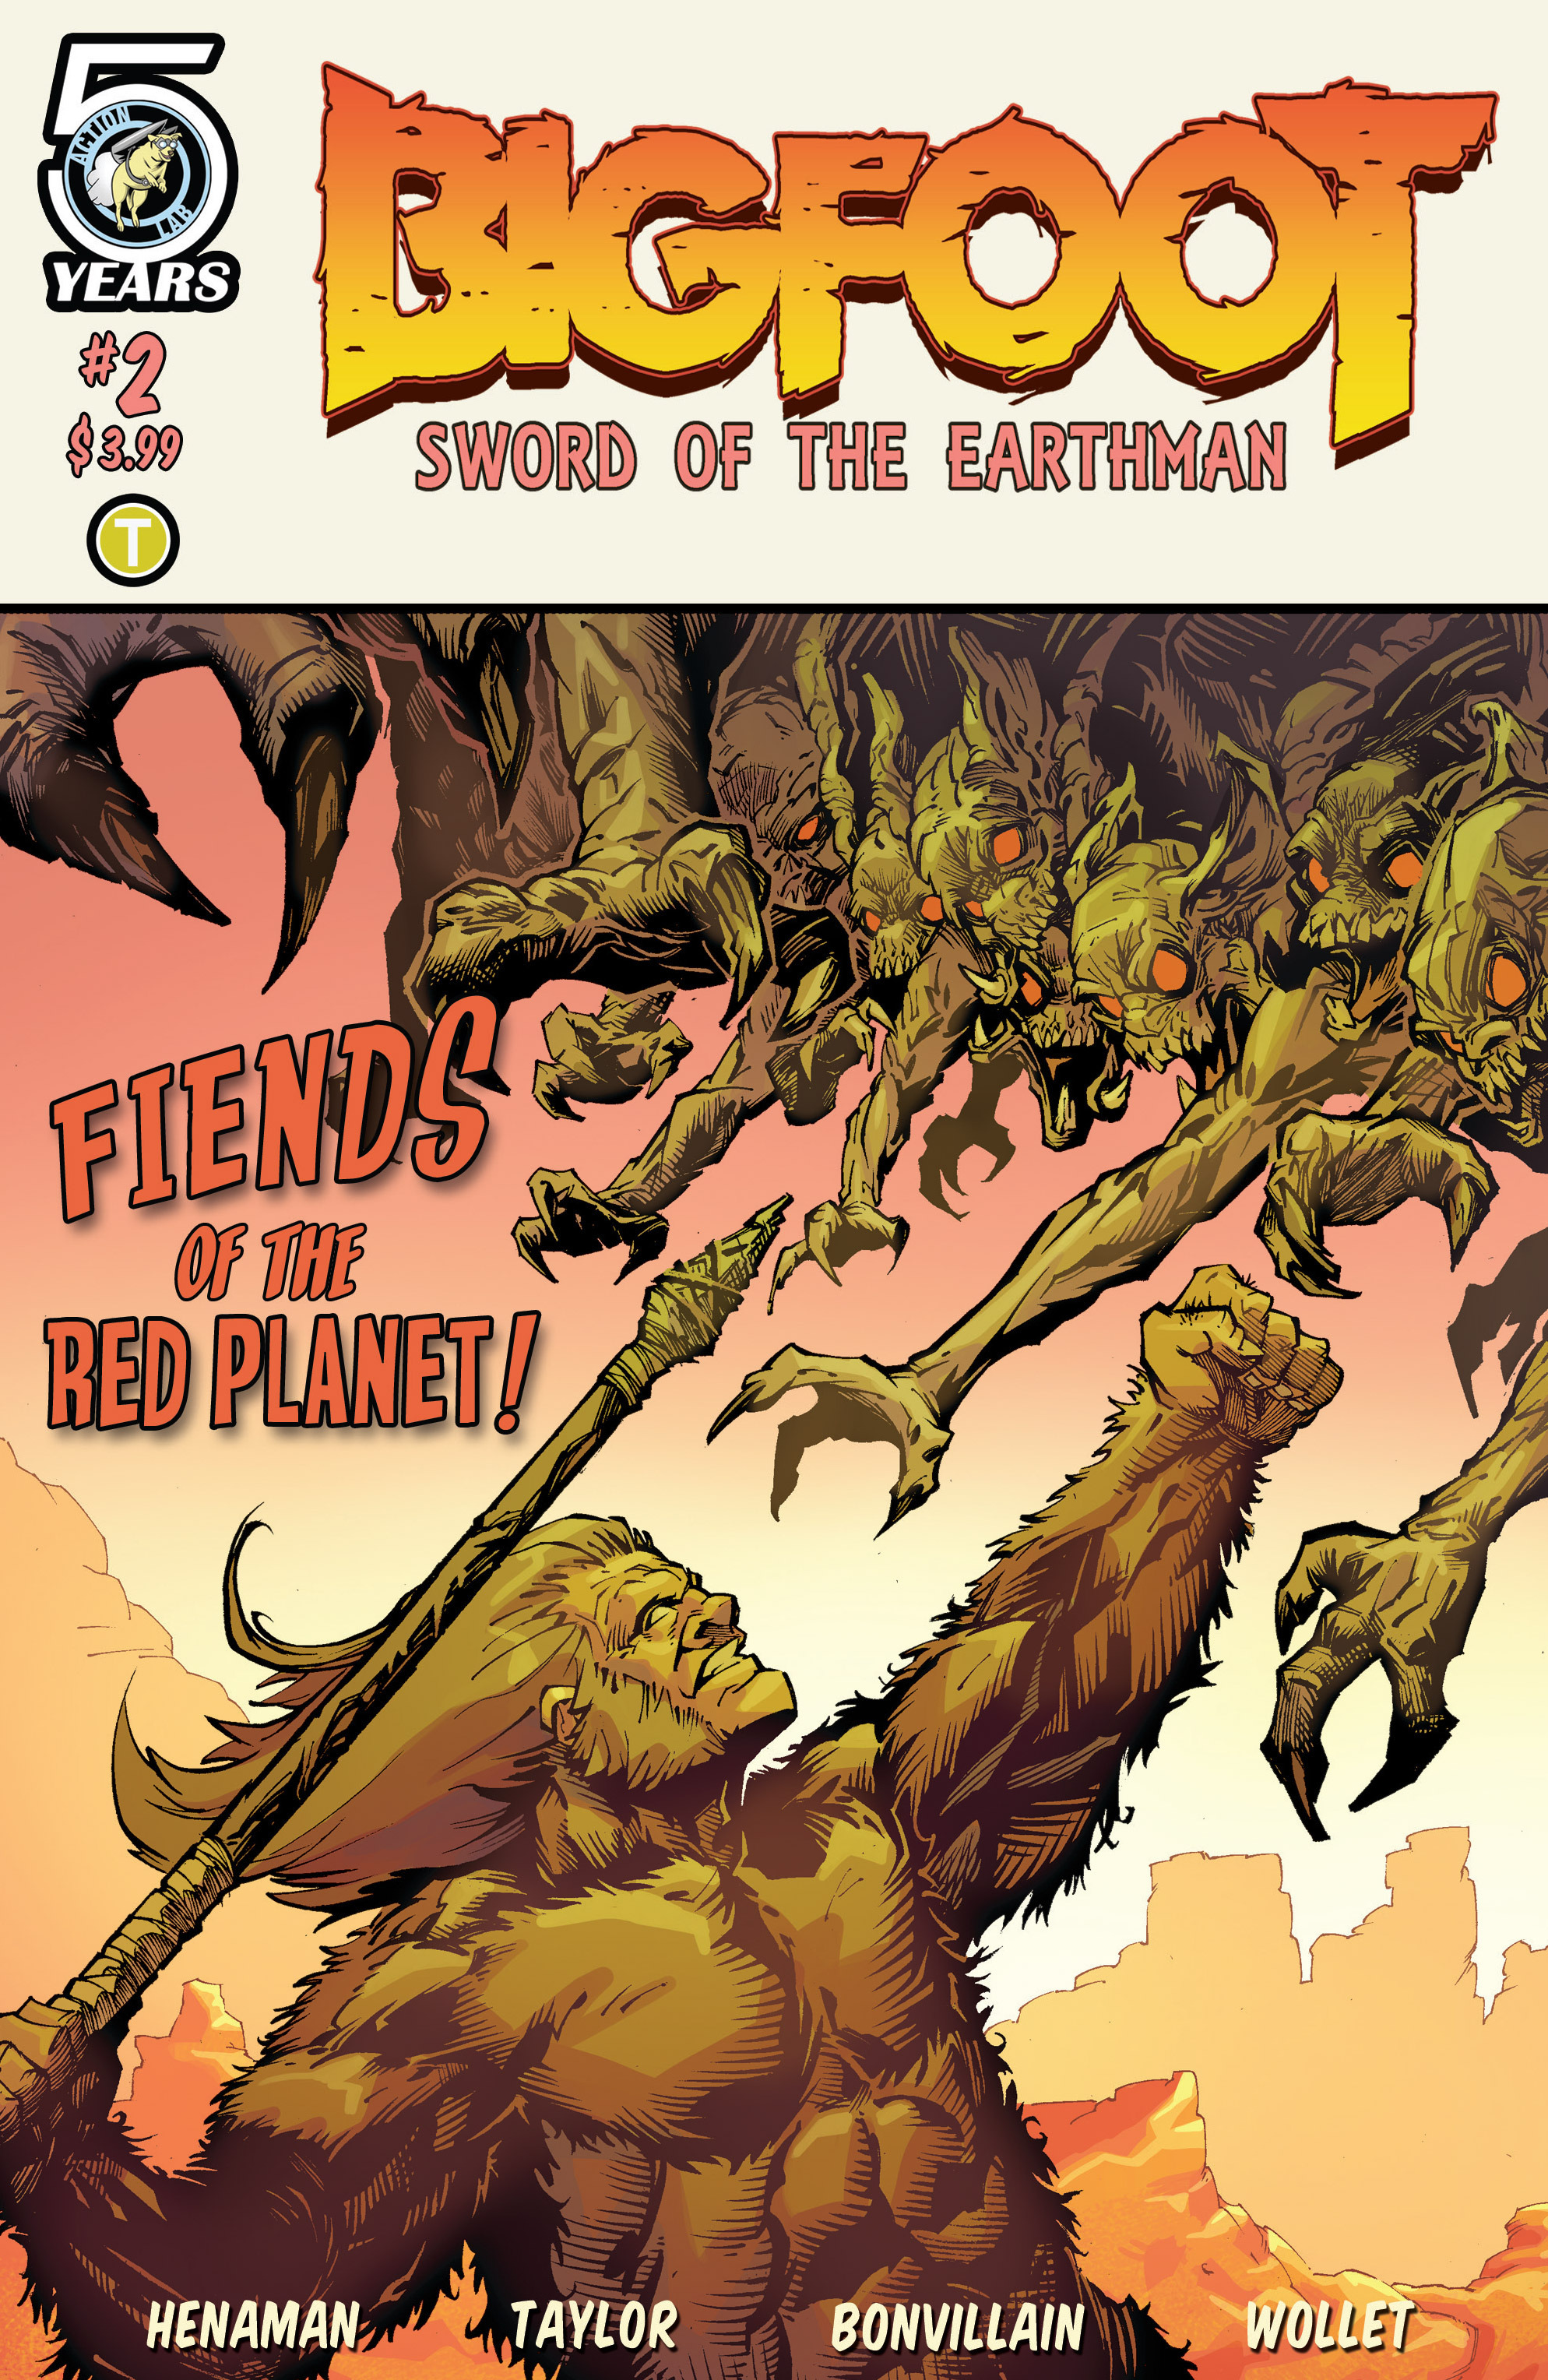 Bigfoot - Sword of the Earthman (2015) issue 2 - Page 1